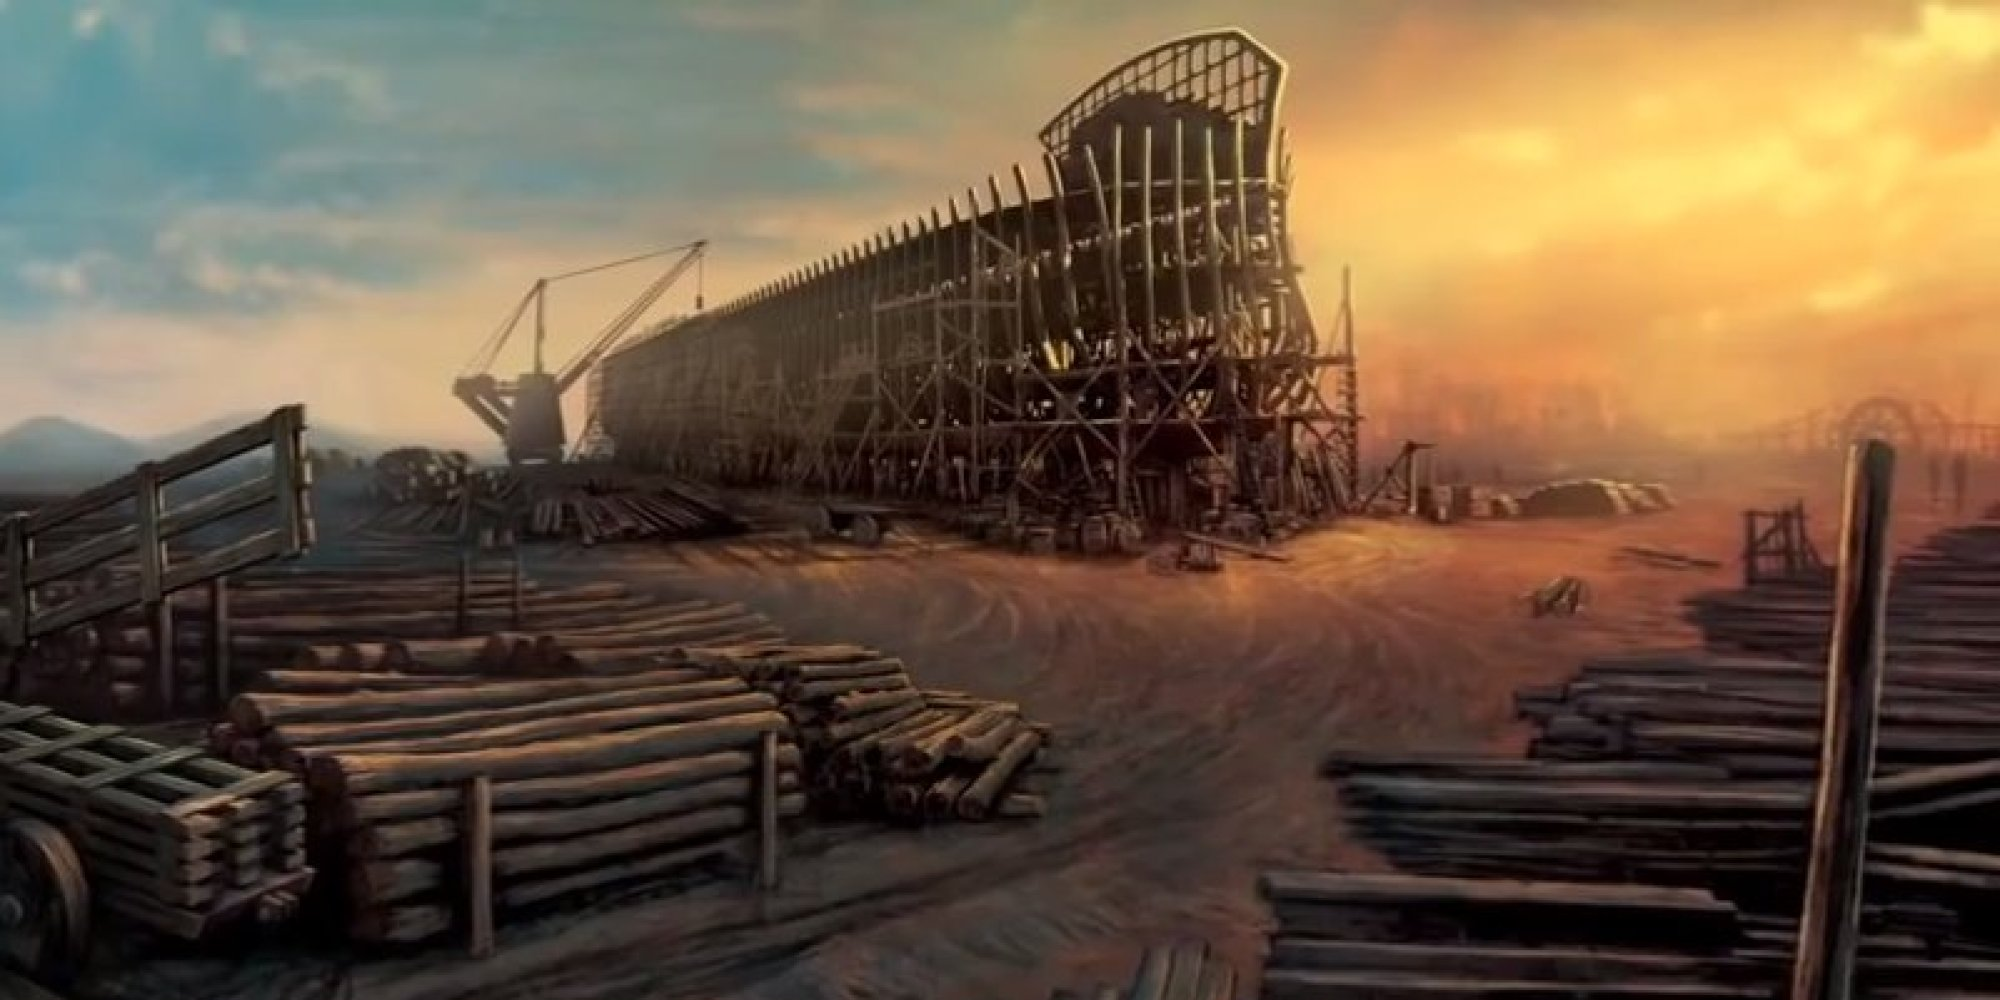 Ken Ham Can Now Build Noah S Ark Thanks To Bill Nye